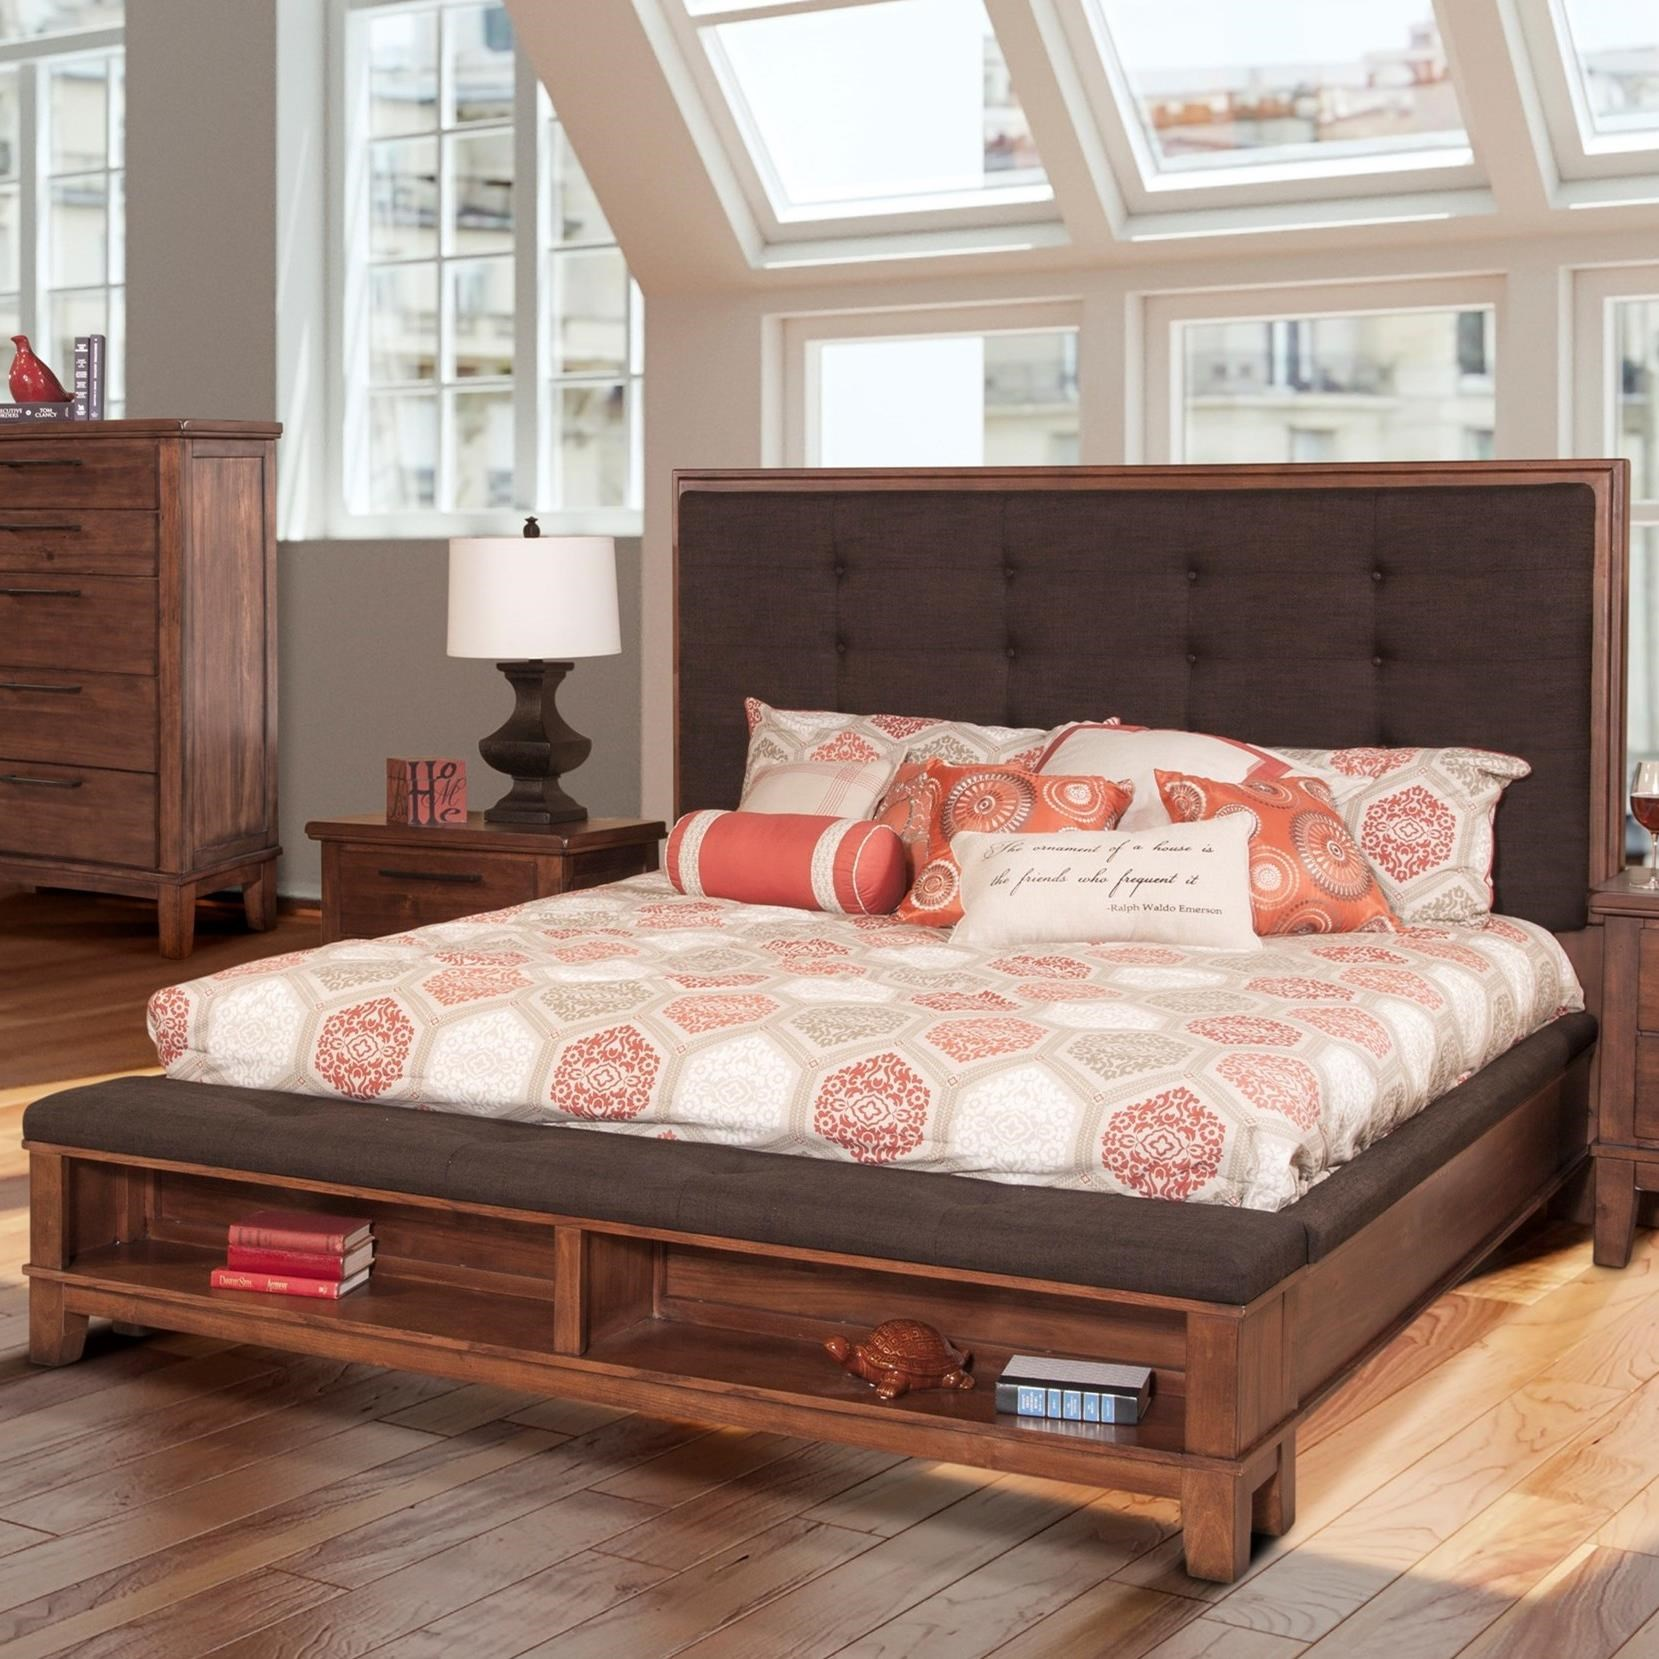 New Classic Cagney Transitional Upholstered Queen Platform Bed With Footboard